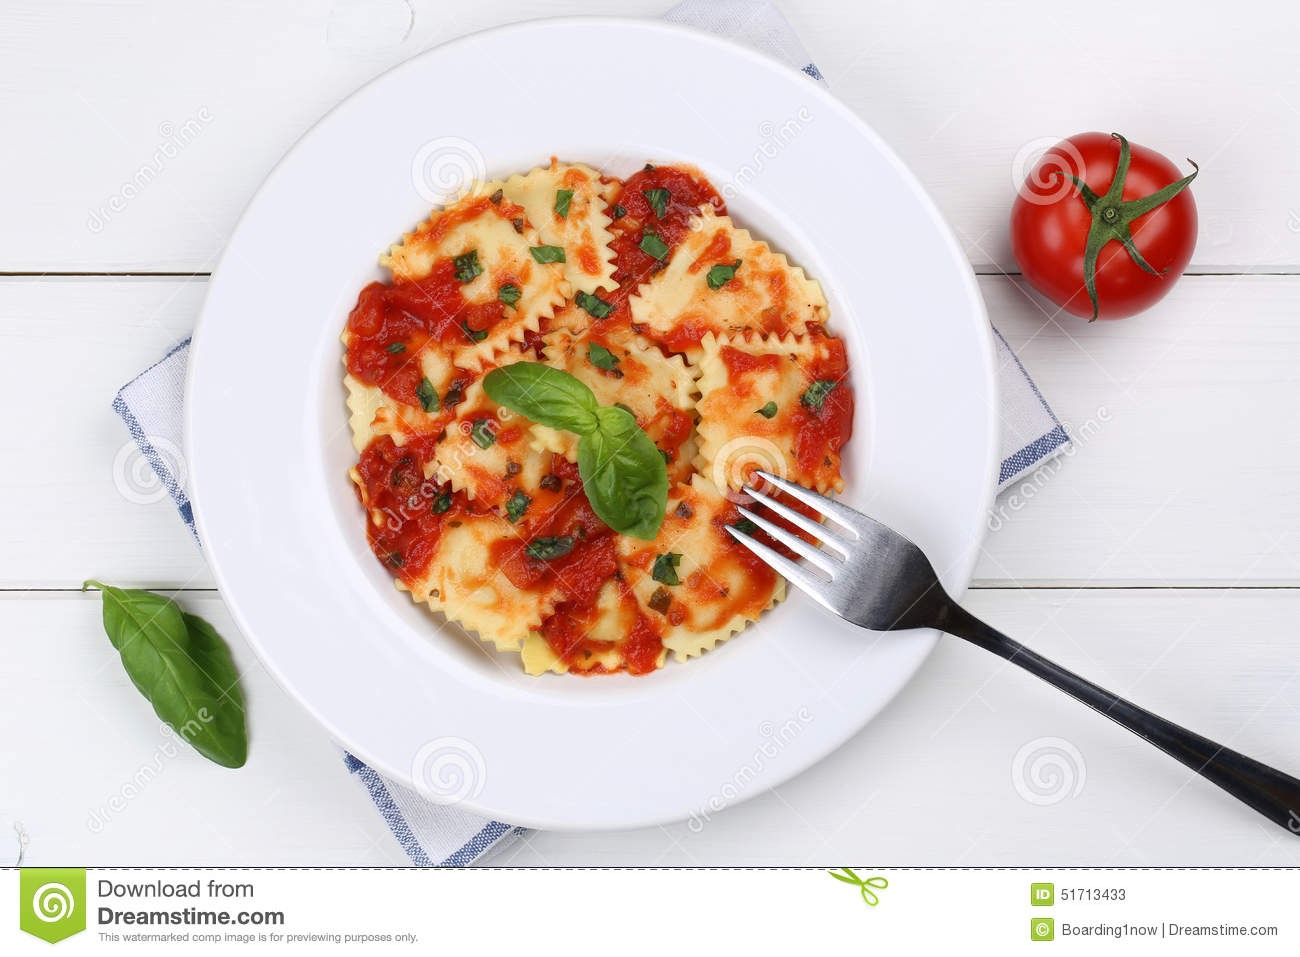 Italian Pasta Ravioli With Tomato Sauce Noodles Meal From Above